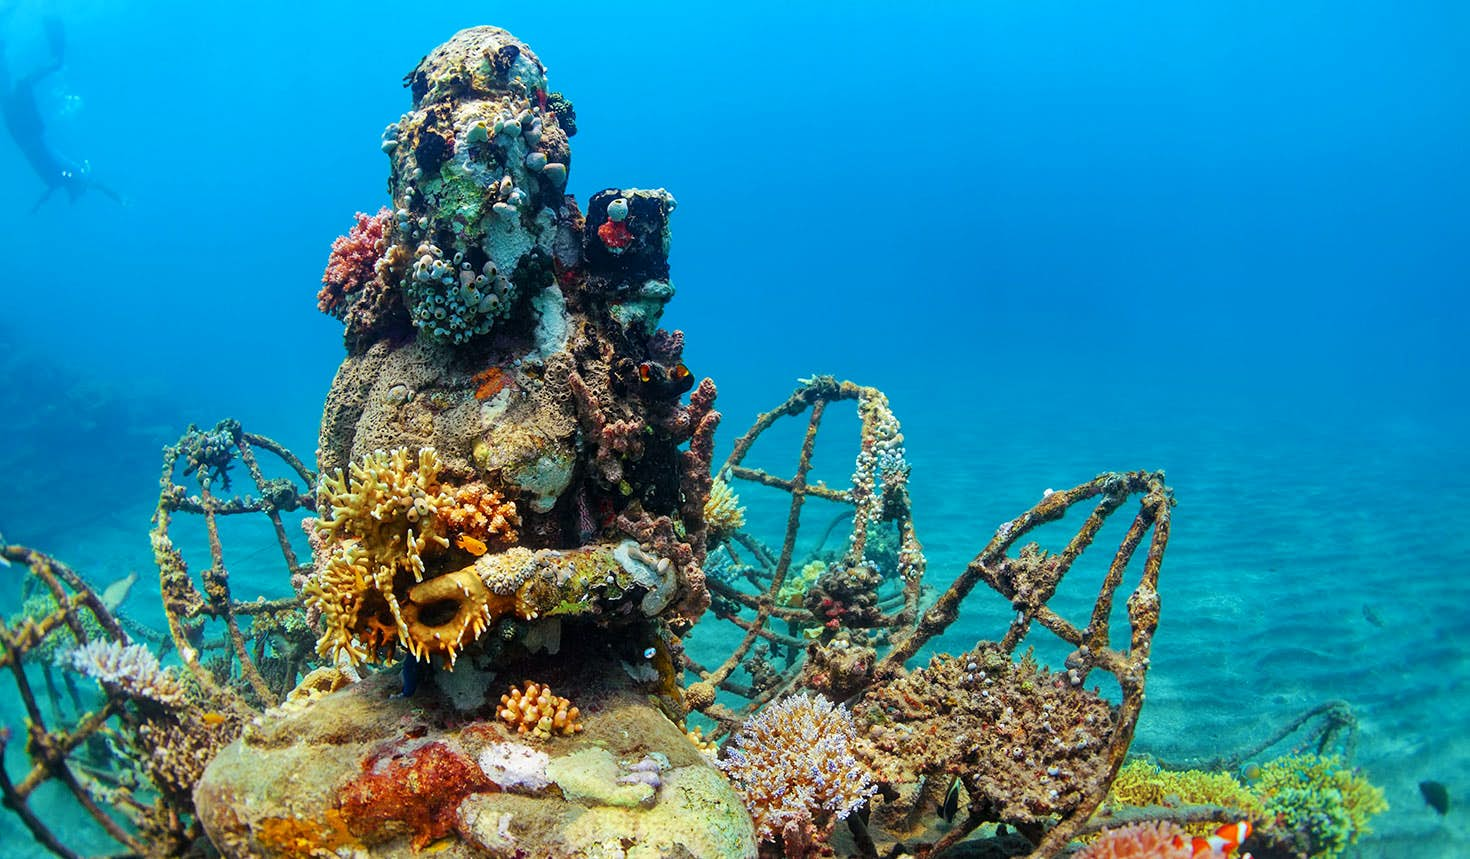 A coral-covered Buddha statue off the coast of Pemuteran, Indonesia. Image: Tropical studio / Shutterstock